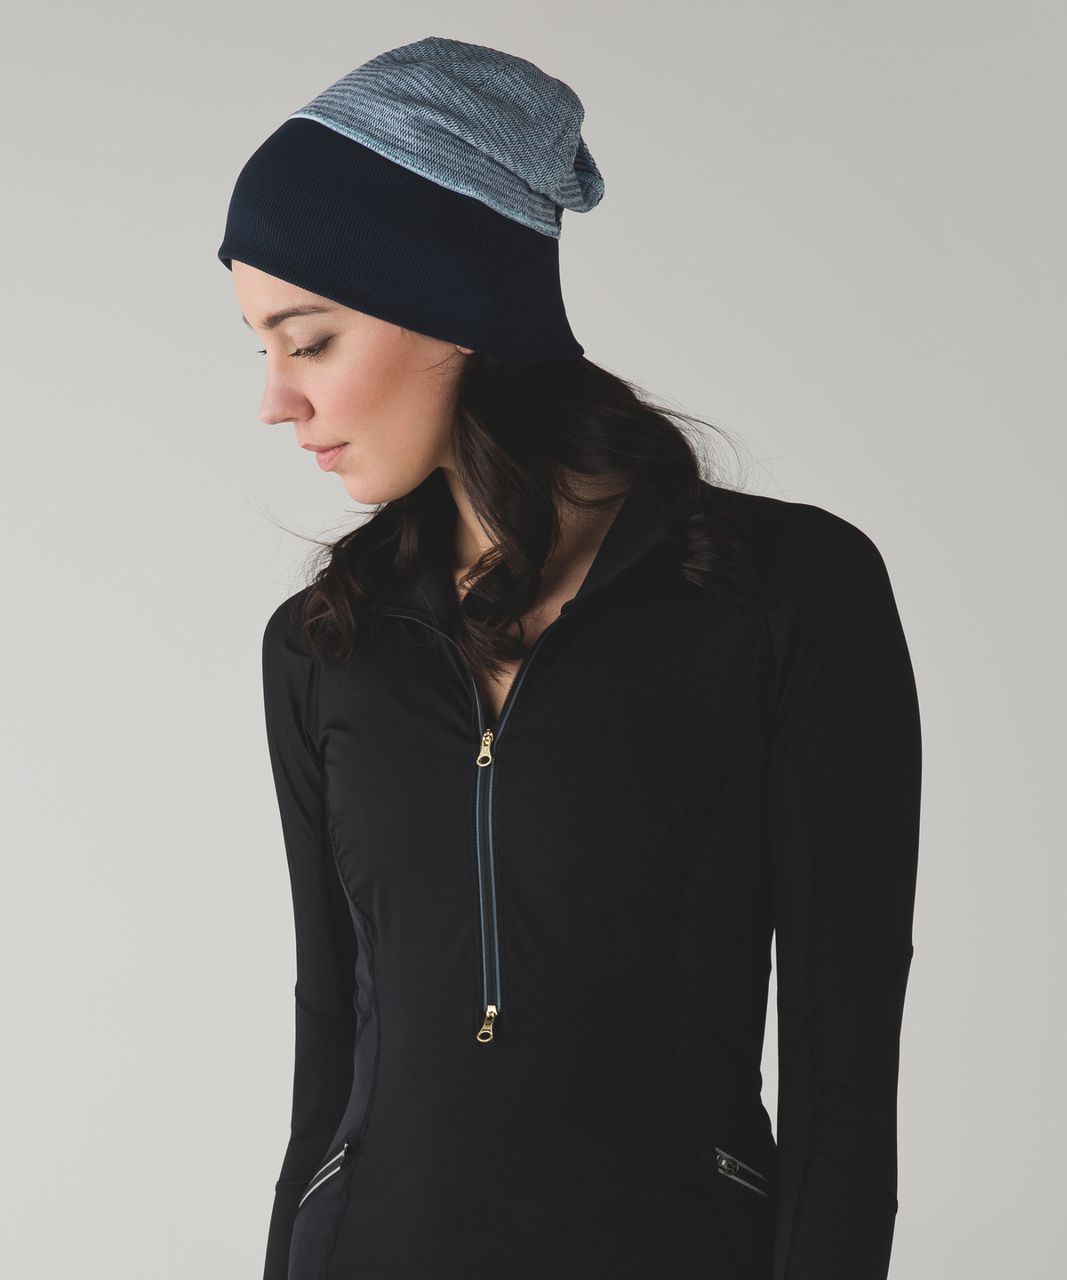 Lululemon Run With Me Toque - Mini Check Pique Caspian Blue Heathered Inkwell / Inkwell